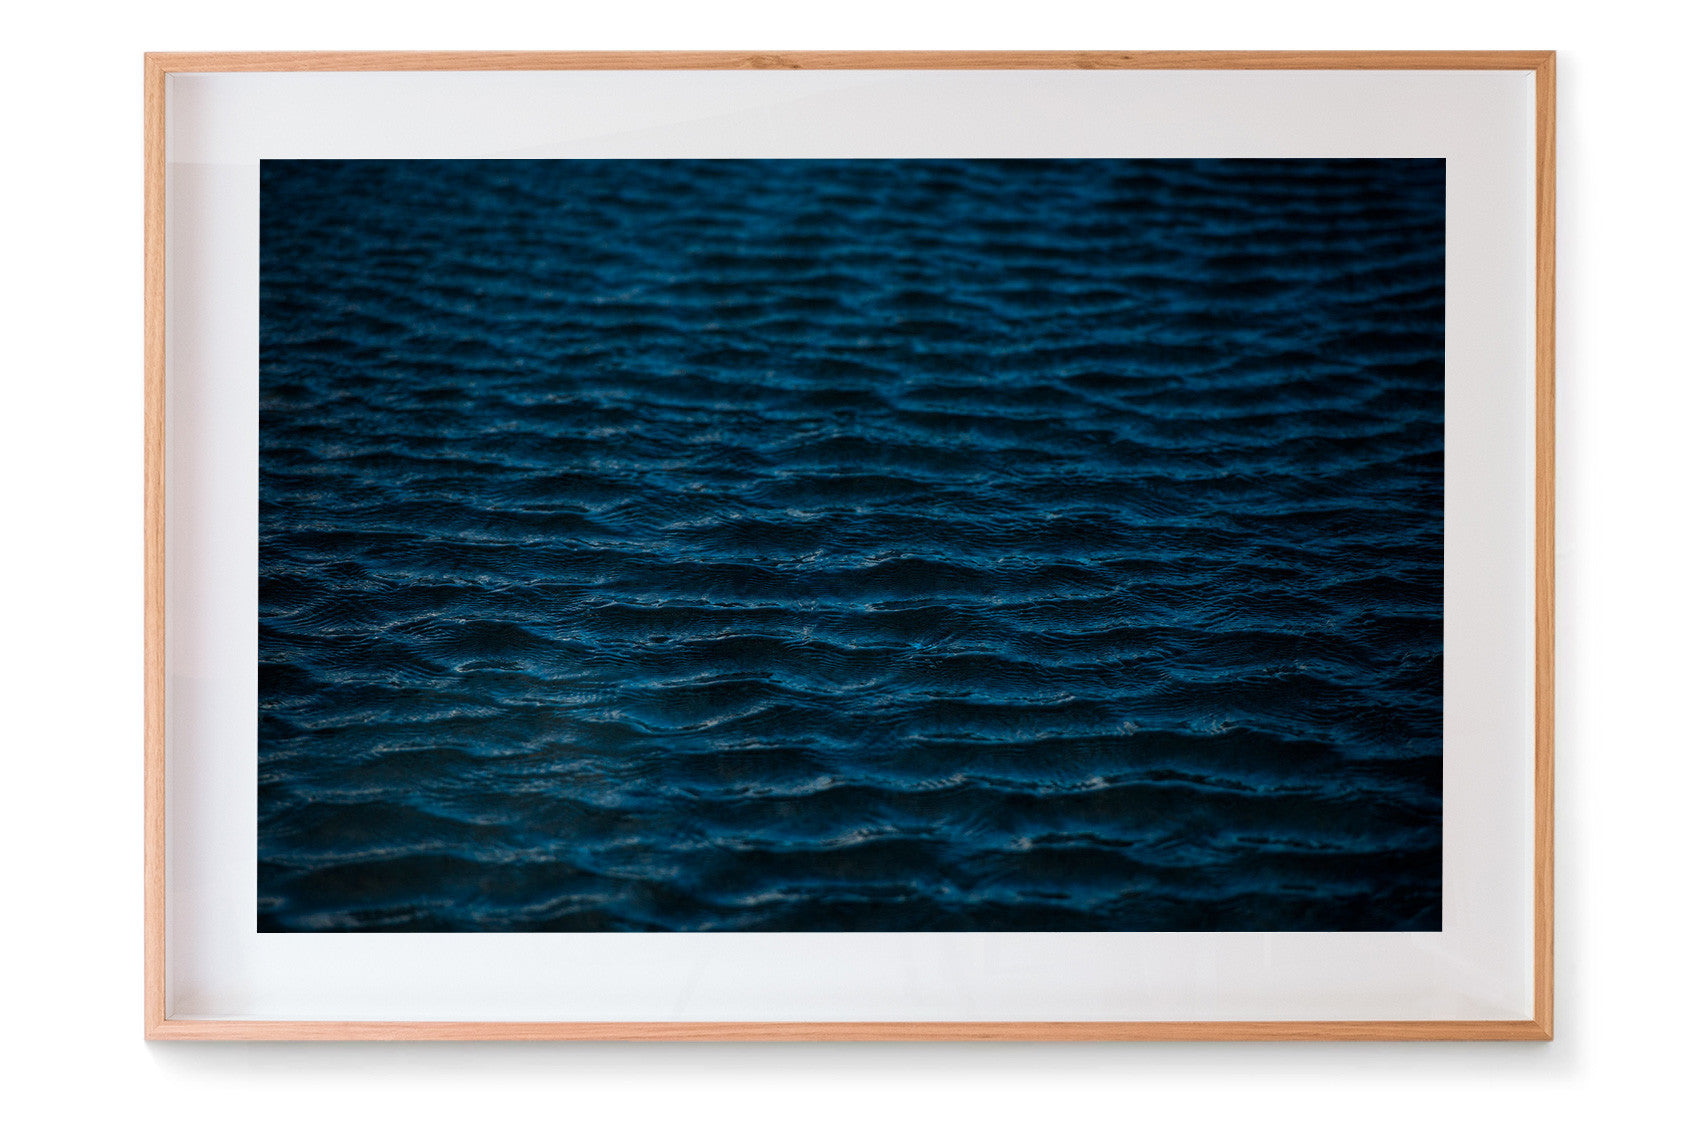 Silence in the Shallows by Chris Grundy | PRINT GALLERY